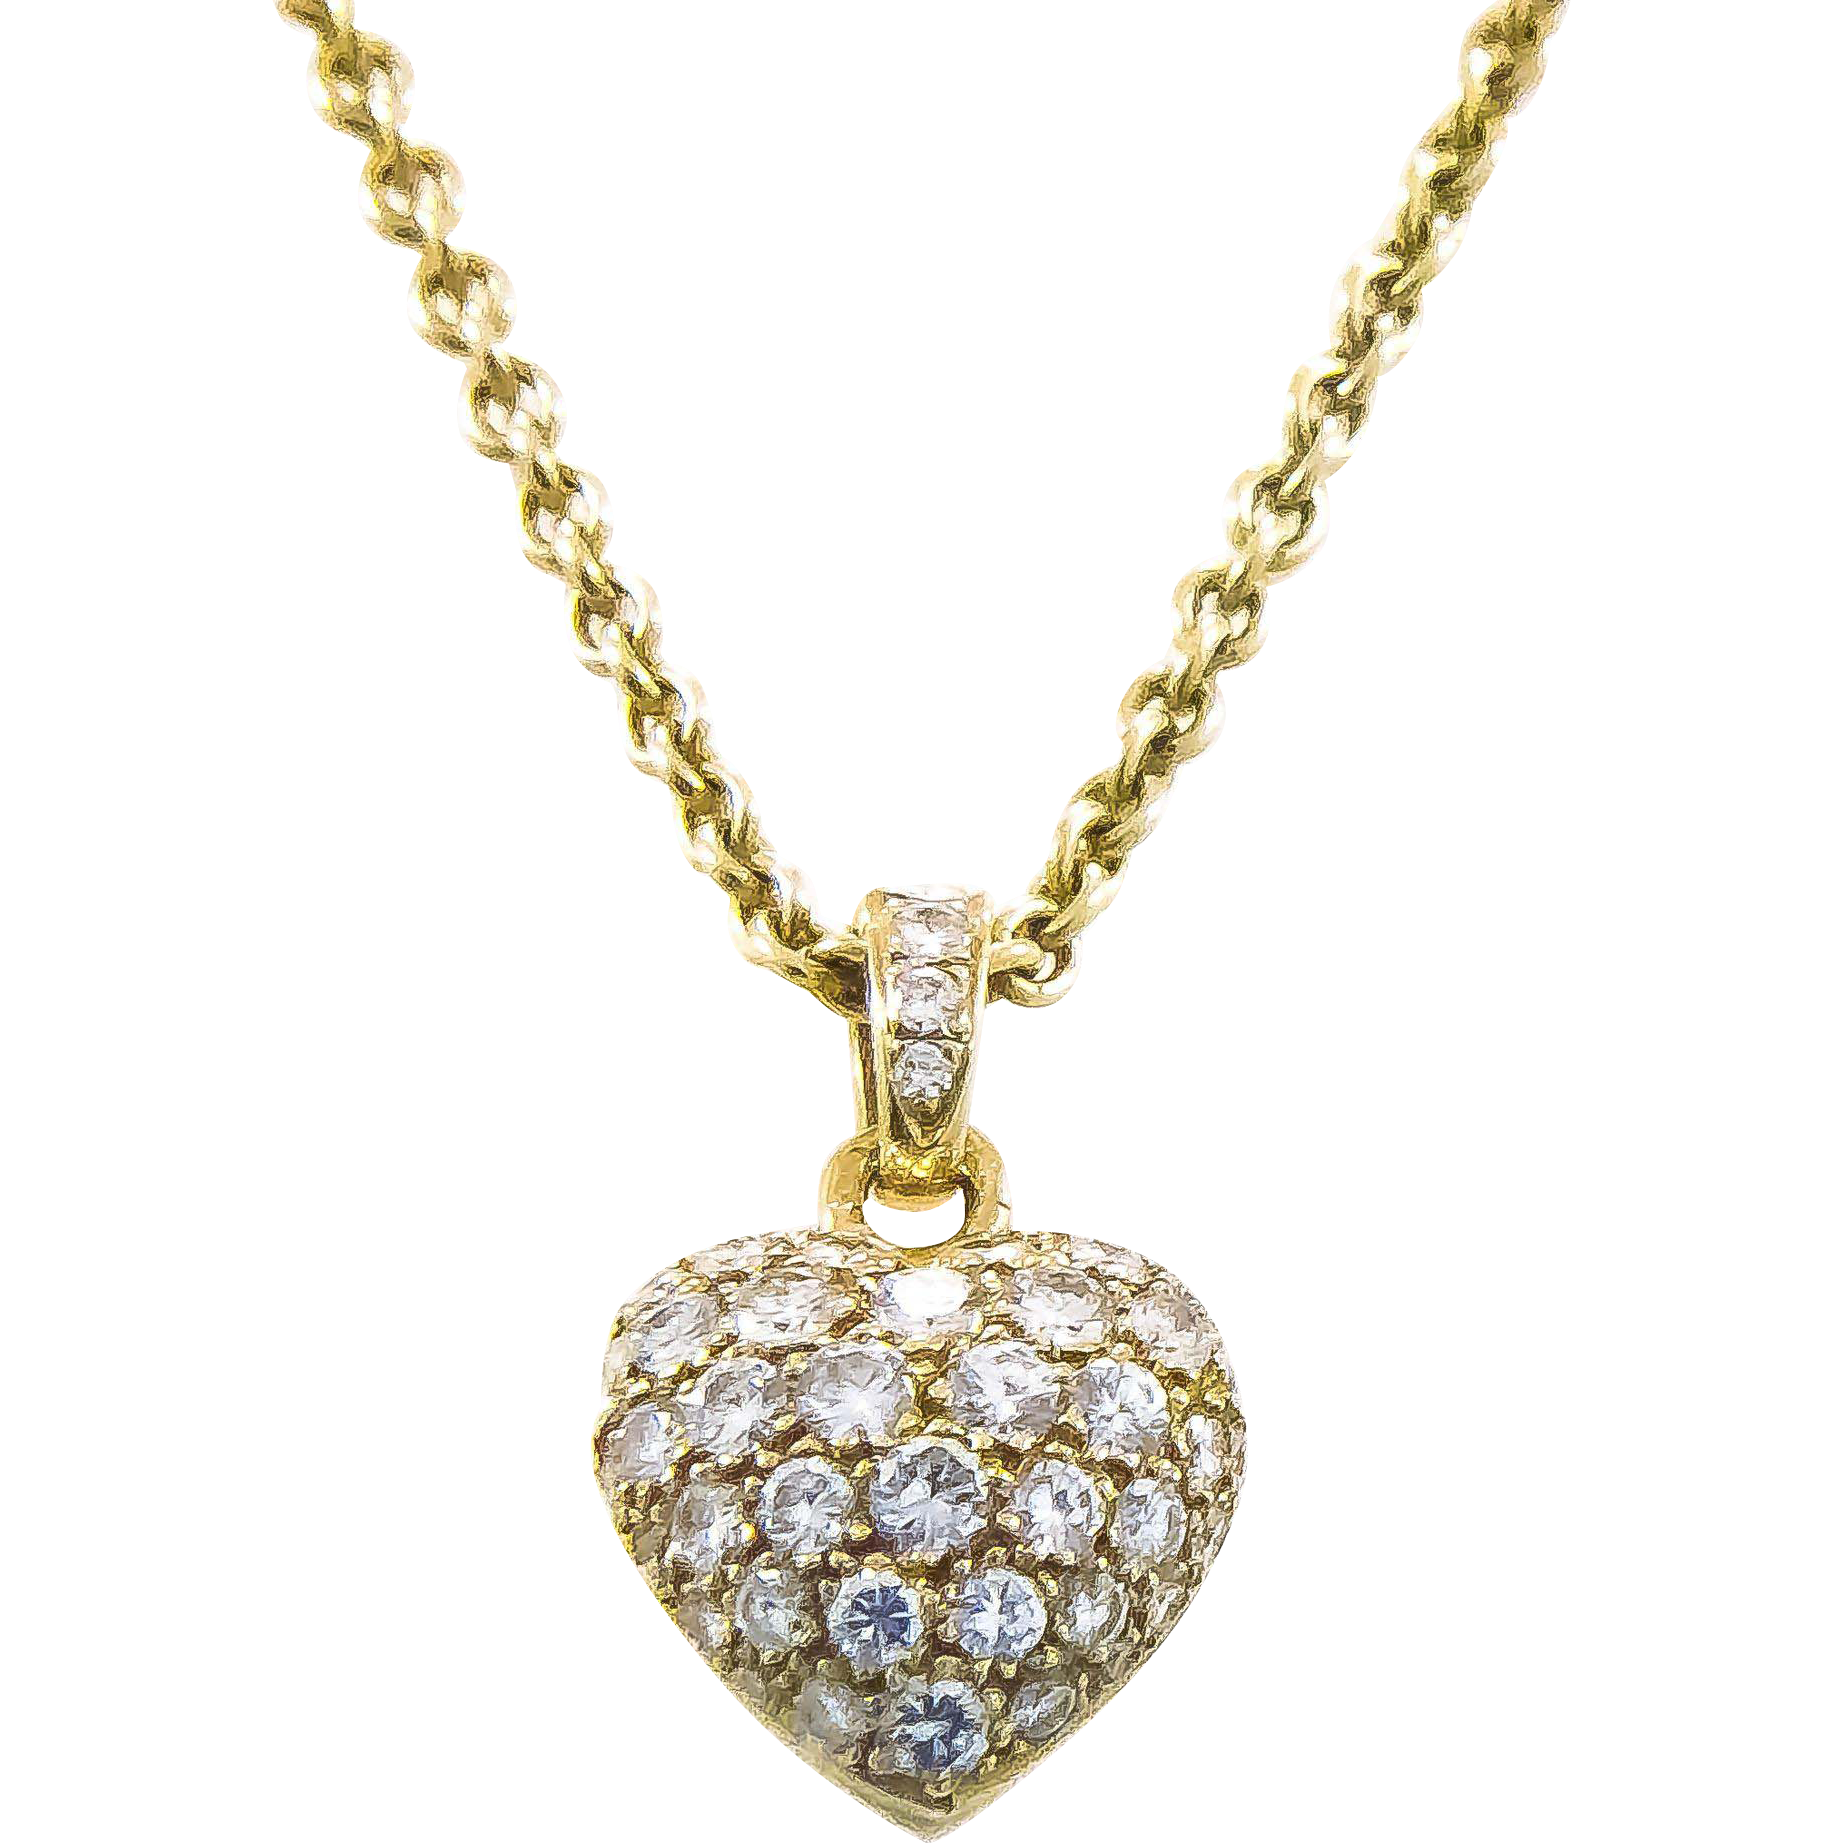 Best of tiffany diamond heart pendant jewellrys website platinum tiffany diamond heart estate necklace from aloadofball Image collections